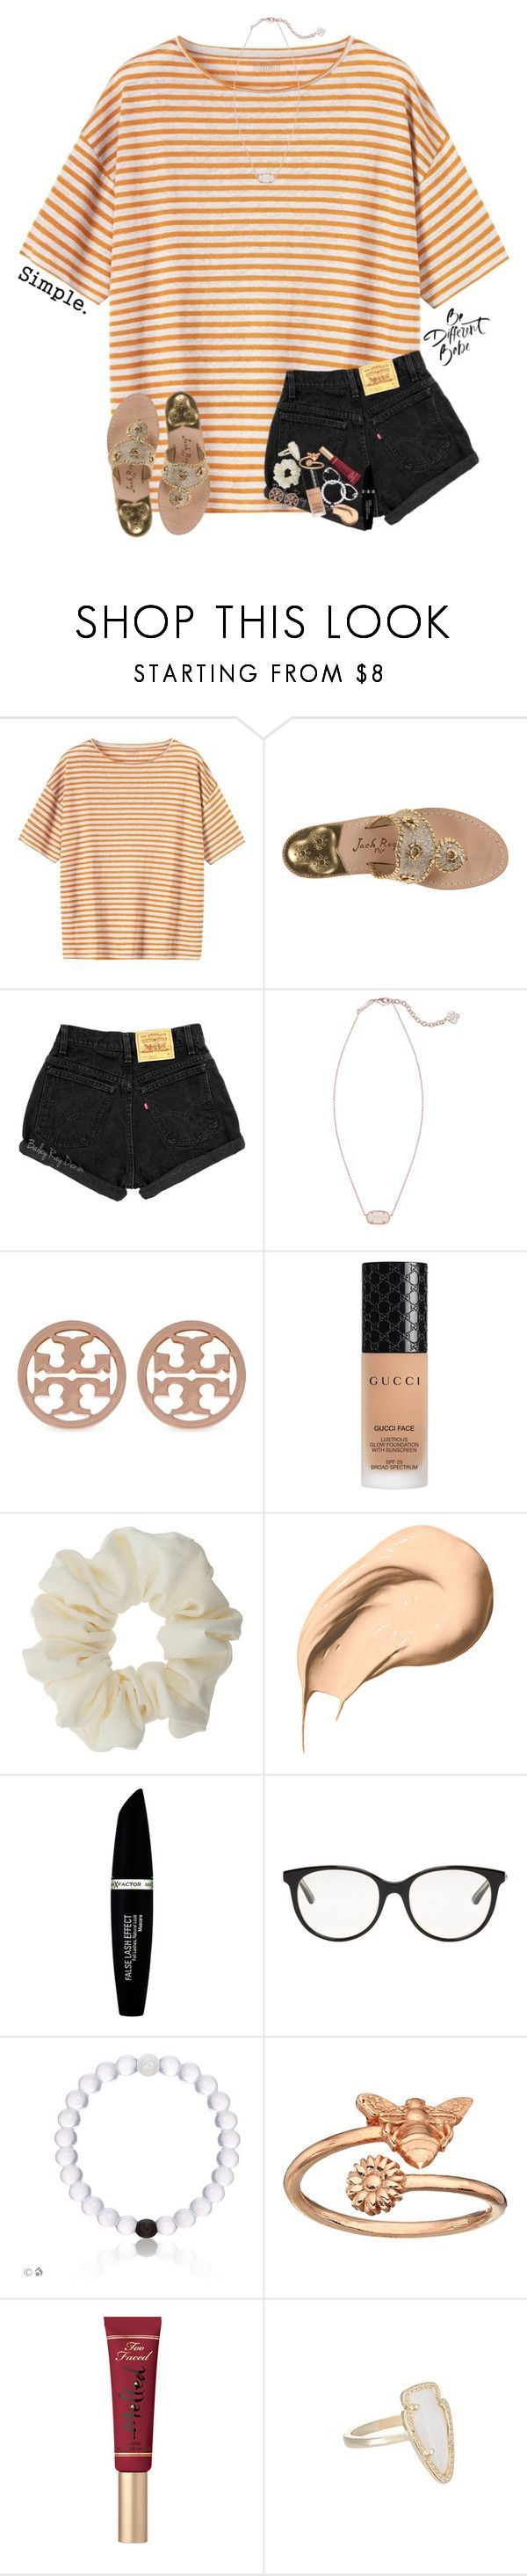 """""""focus"""" by elliegracee ❤ liked on Polyvore featuring Toast, Jack Rogers, Kendra Scott, Tory Burch, Gucci, Miss Selfridge, Bobbi Brown Cosmetics, Max Factor, Christian Dior and Alex and Ani"""